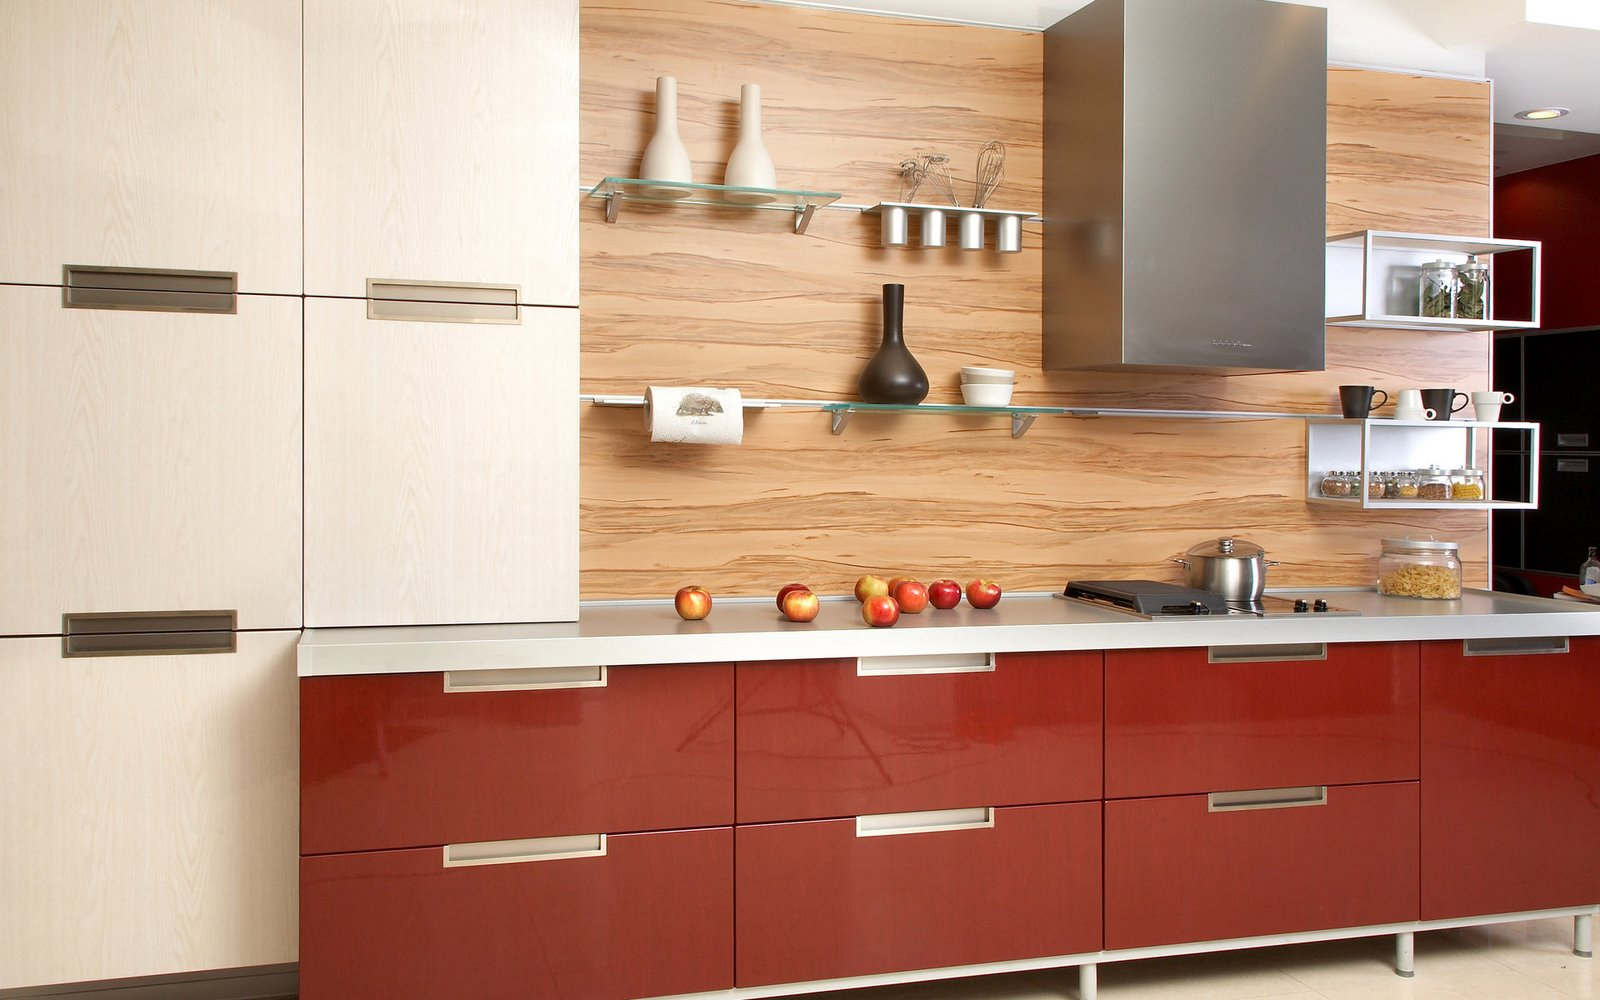 Design, Hi End Kitchen The Clean Lines And Sleek Look Is So Modern